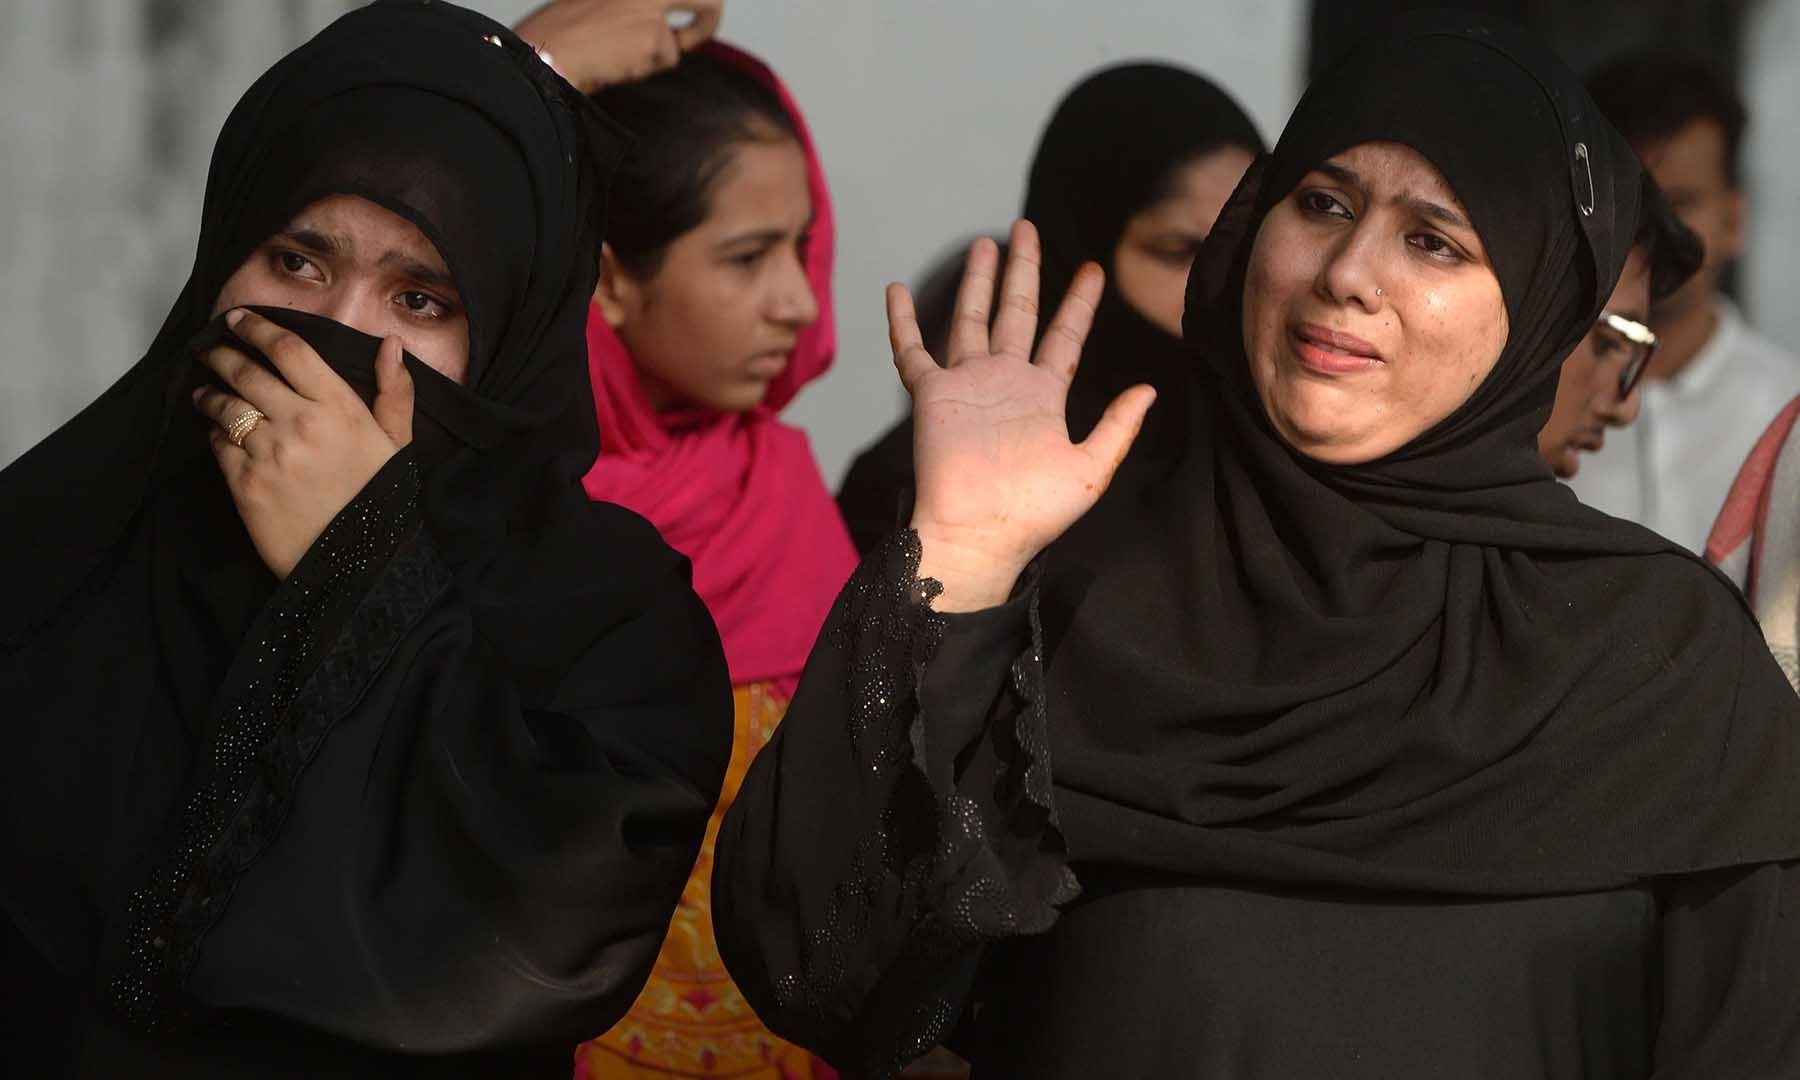 Pakistani women react after the departure of their Indian relatives travelling with the Samjhauta Express train, also called the Friendship Express that runs between Delhi and Attari in India and Lahore in Pakistan, at the railway station in Lahore on Aug 8. — AFP